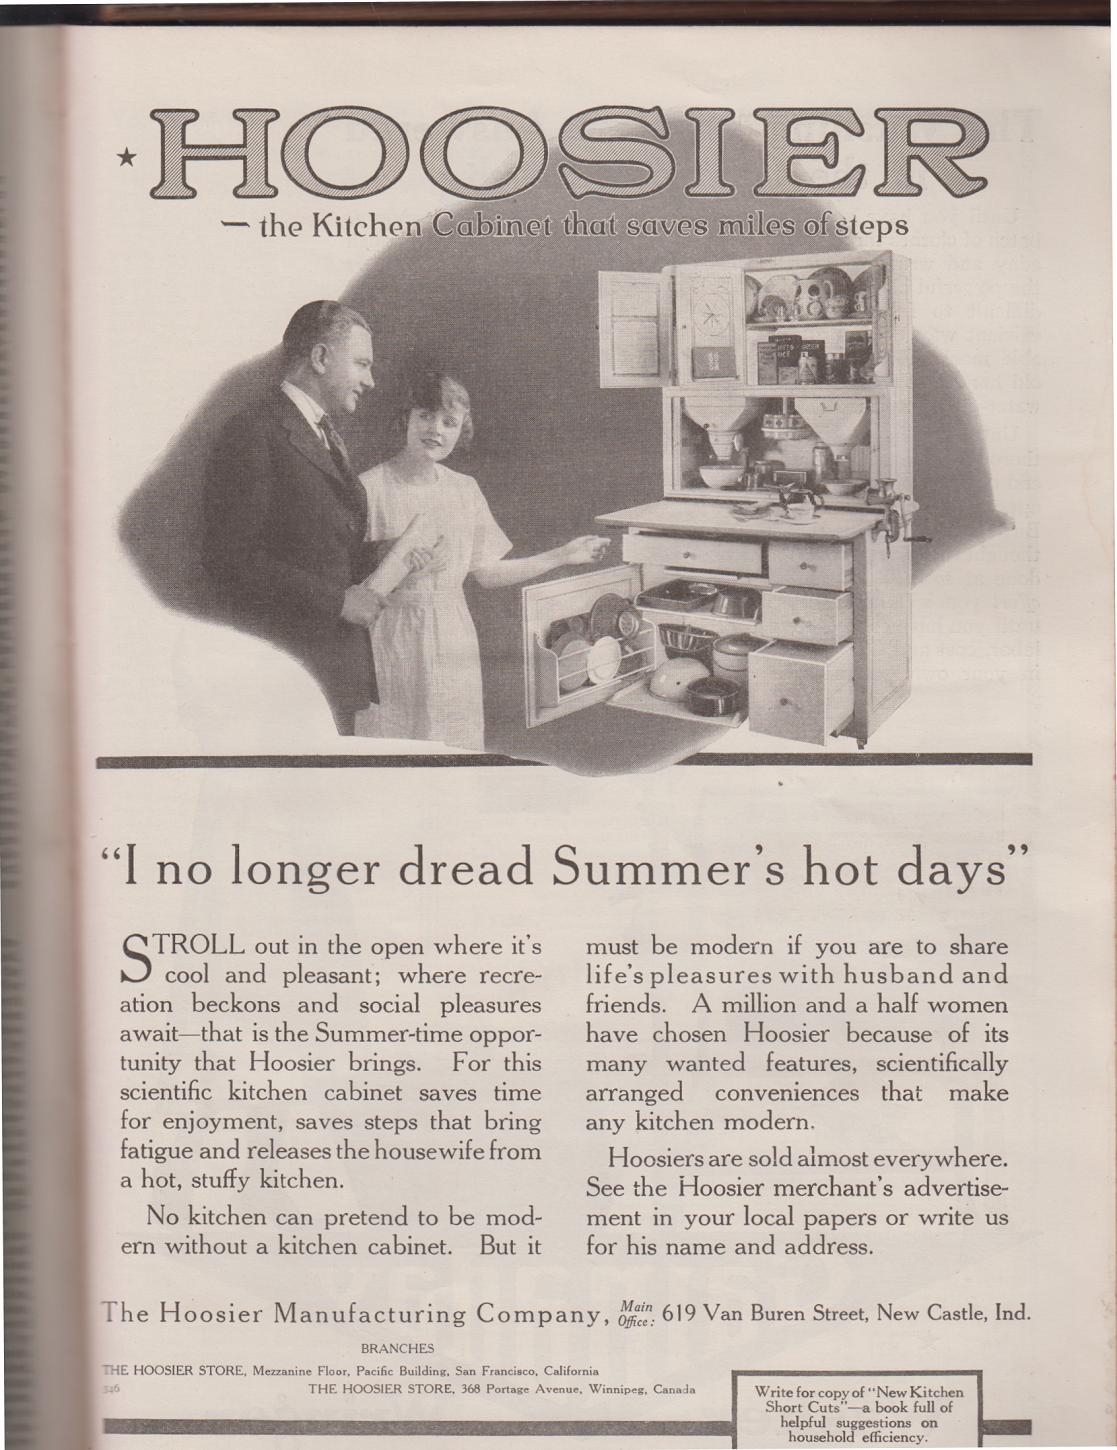 Sunday Adverts Hoosier Kitchens Cabinets And Refrigerators In 1919